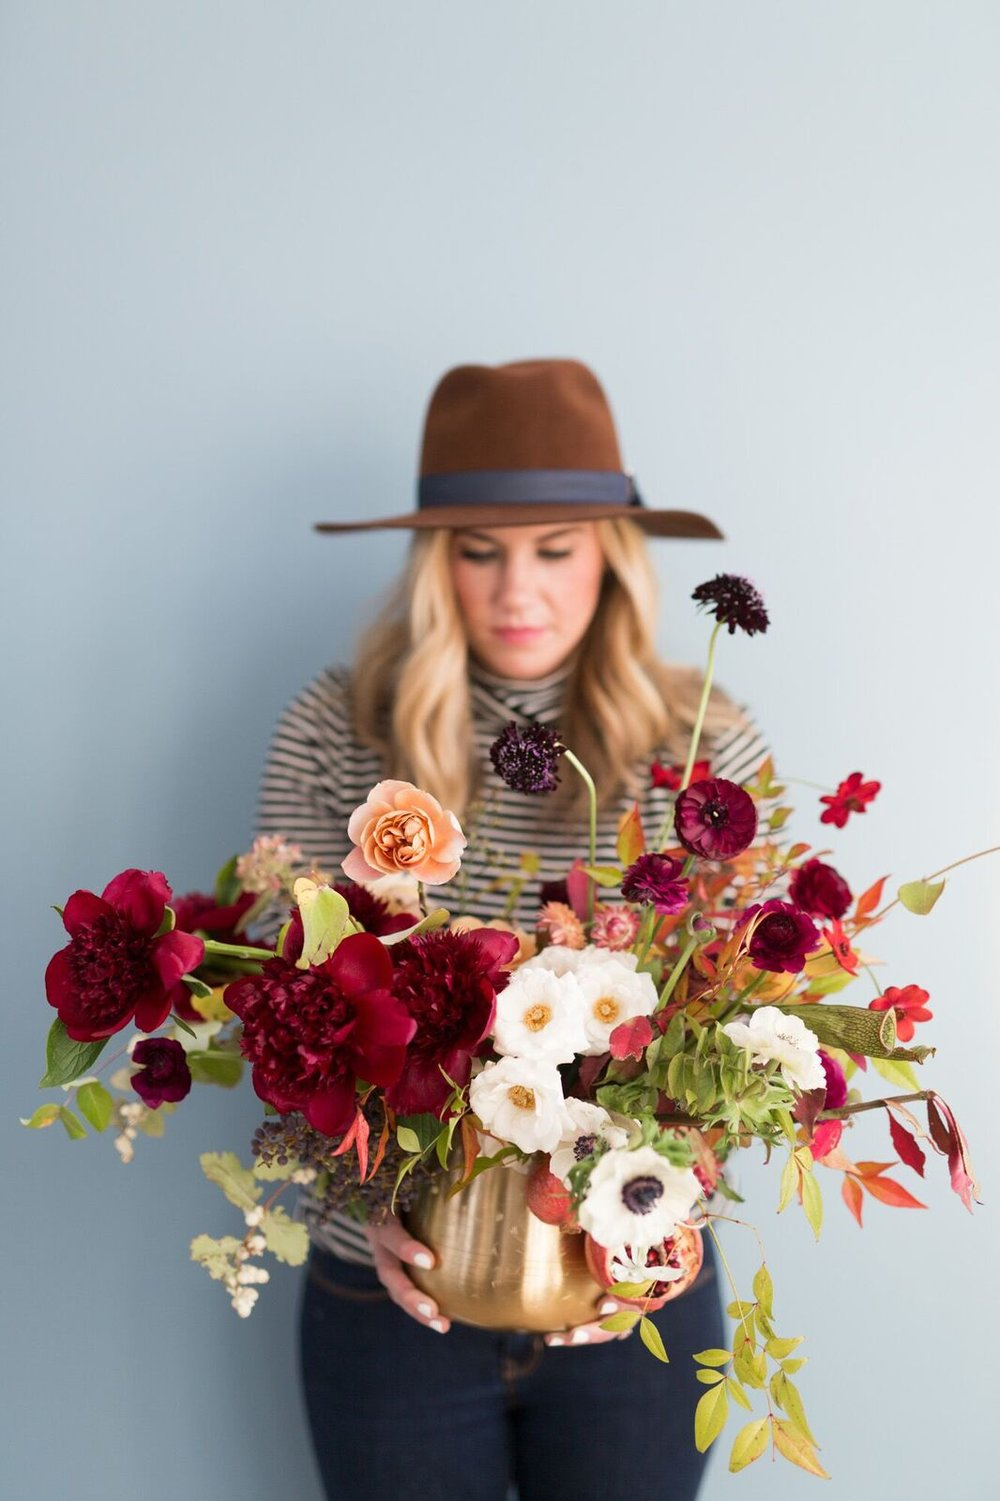 Holiday Floral Arrangement How To - Studio McGee